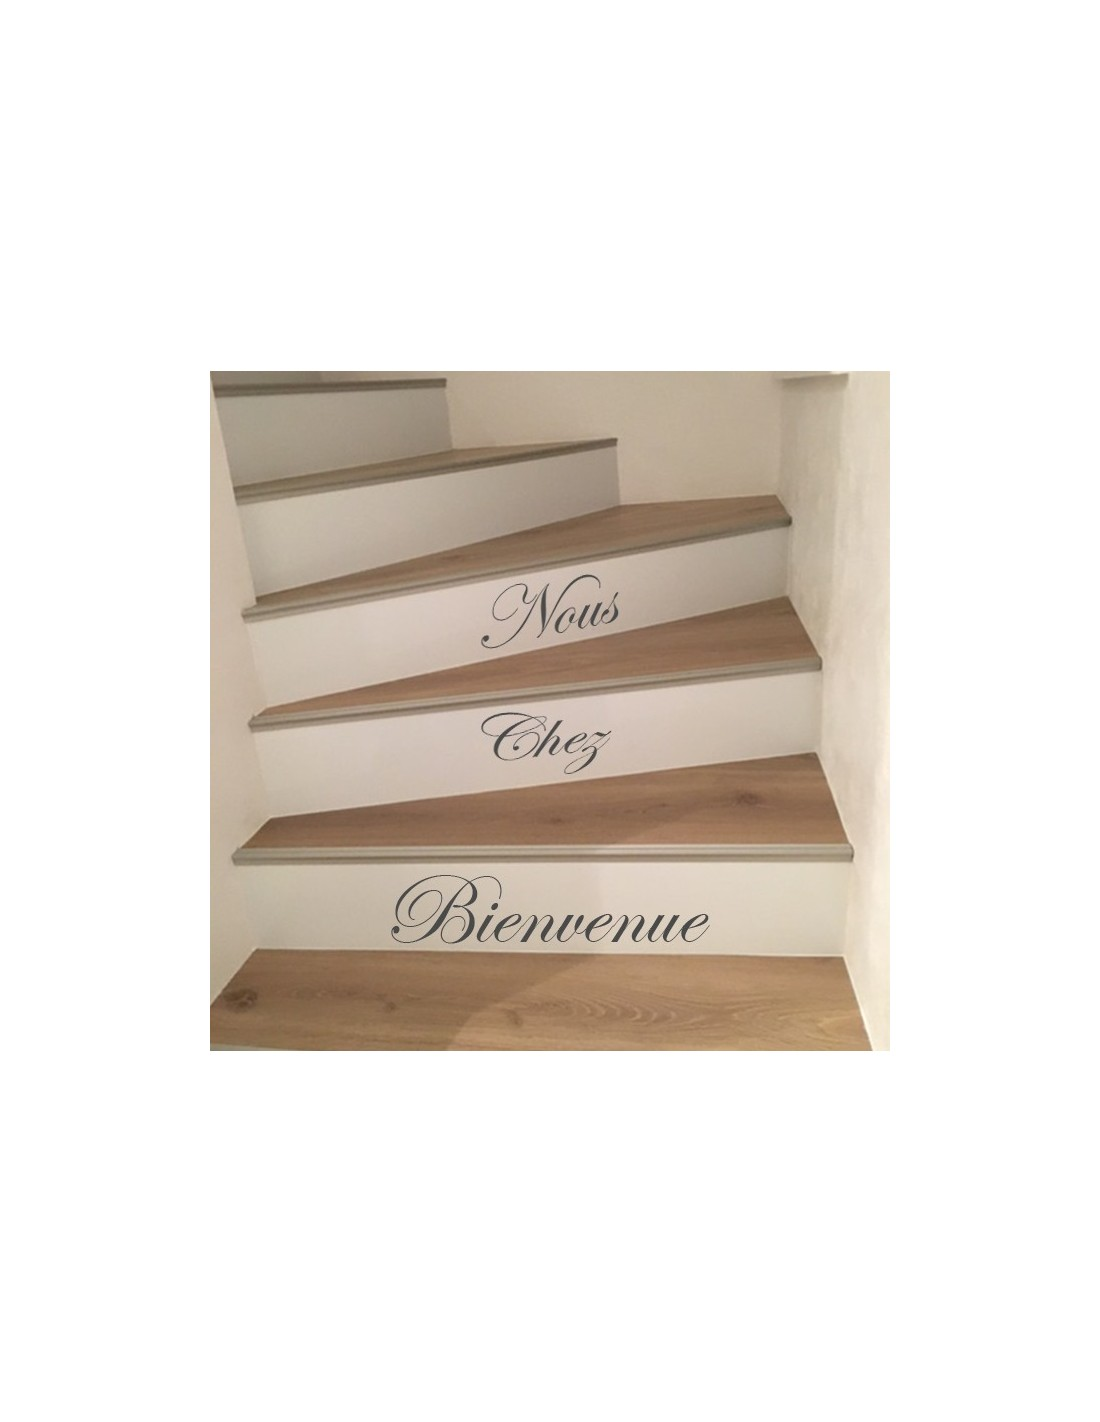 kit 3 stickers personnalis s pour contremarche d 39 escalier. Black Bedroom Furniture Sets. Home Design Ideas